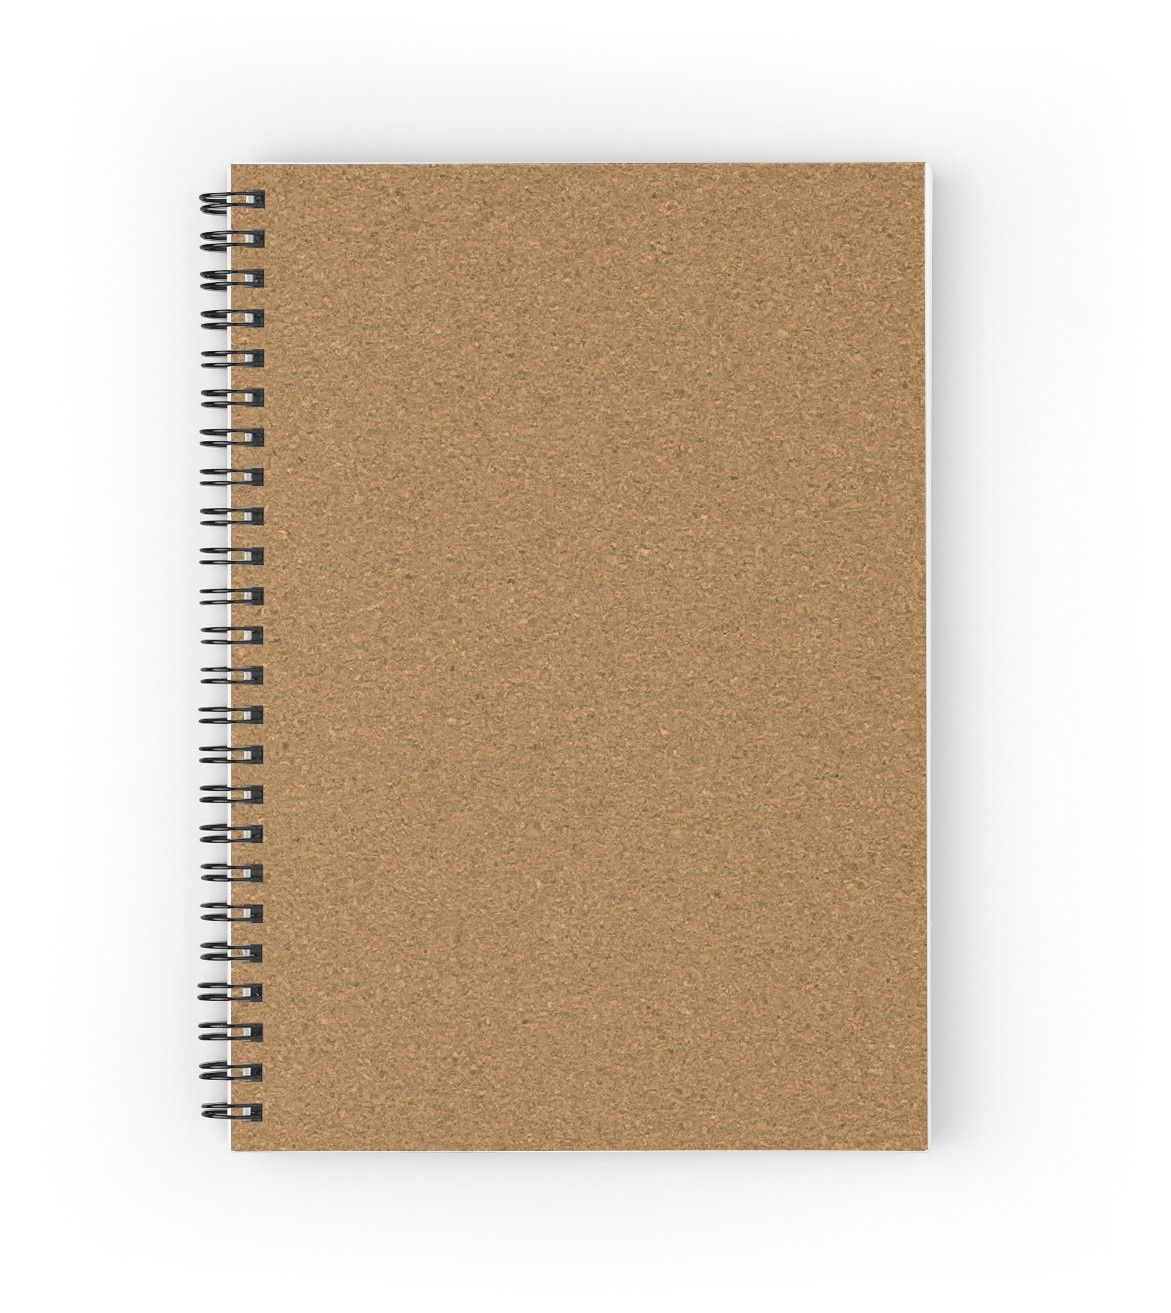 Looks Like Cork Spiral Notebook By Witandwhimsey In 2020 Graphic Design Mockup Graphic Design Background Templates Journal Template